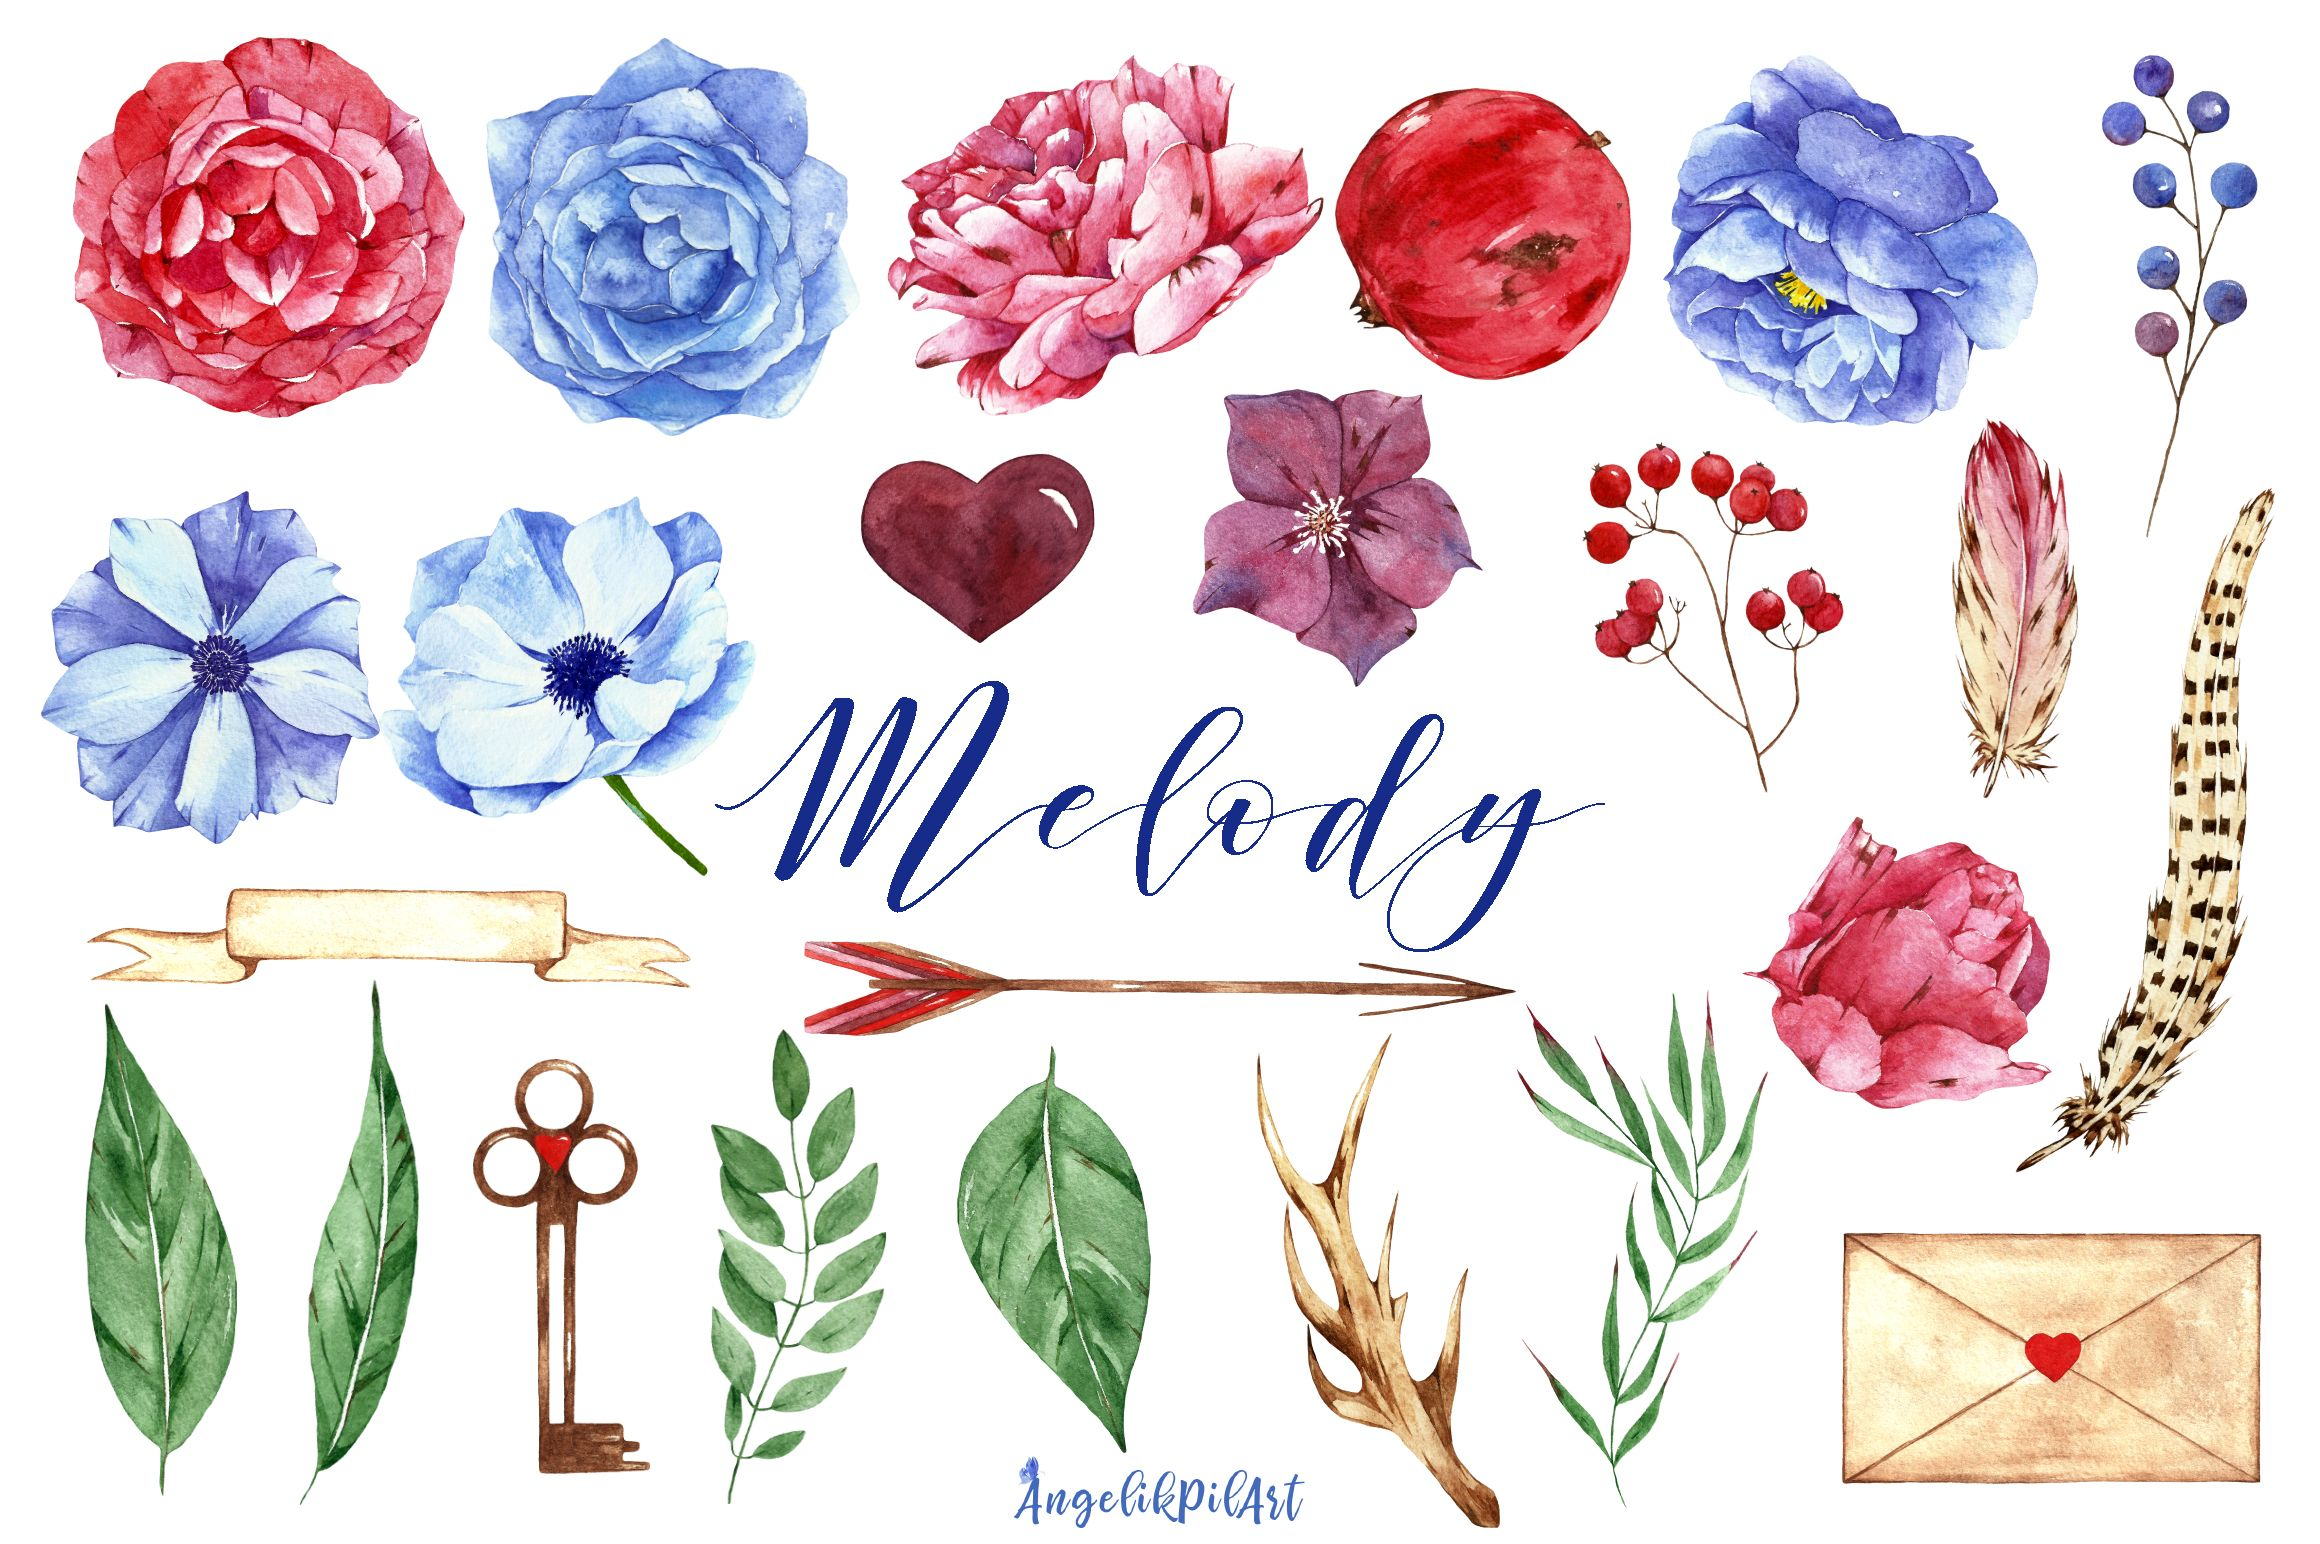 Watercolor Flower Clipart Melody Graphic By Angela Pylypenko